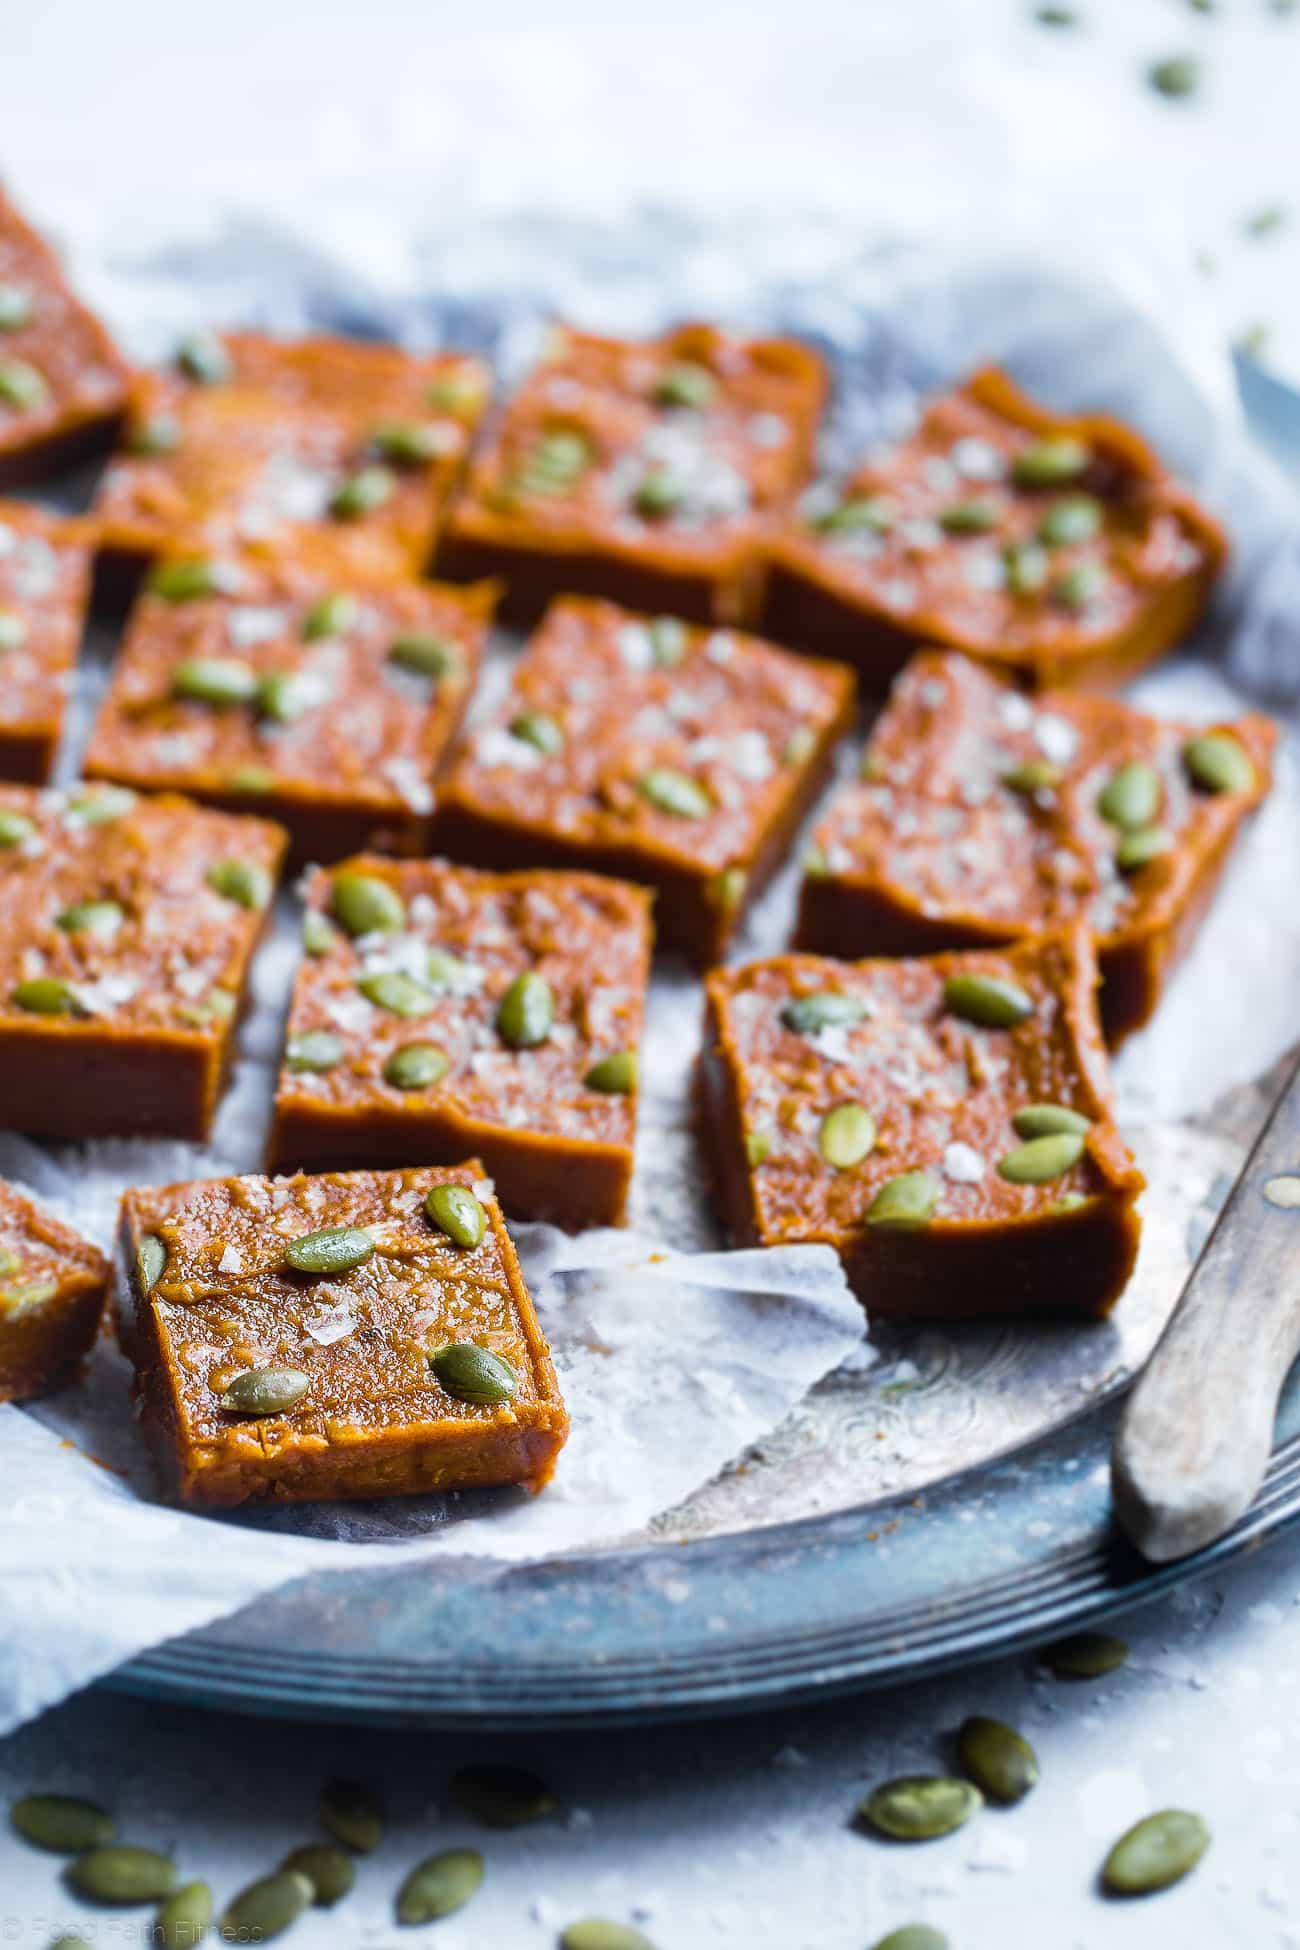 Sugar Free Vegan Pumpkin Freezer Fudge - Thispaleo, dairy-free pumpkin fudge requires only a few minutes to make and is naturally sweetened with dates! It's gluten, grain and dairy free and SO creamy! | Foodfaithfitness.com | @FoodFaithFit